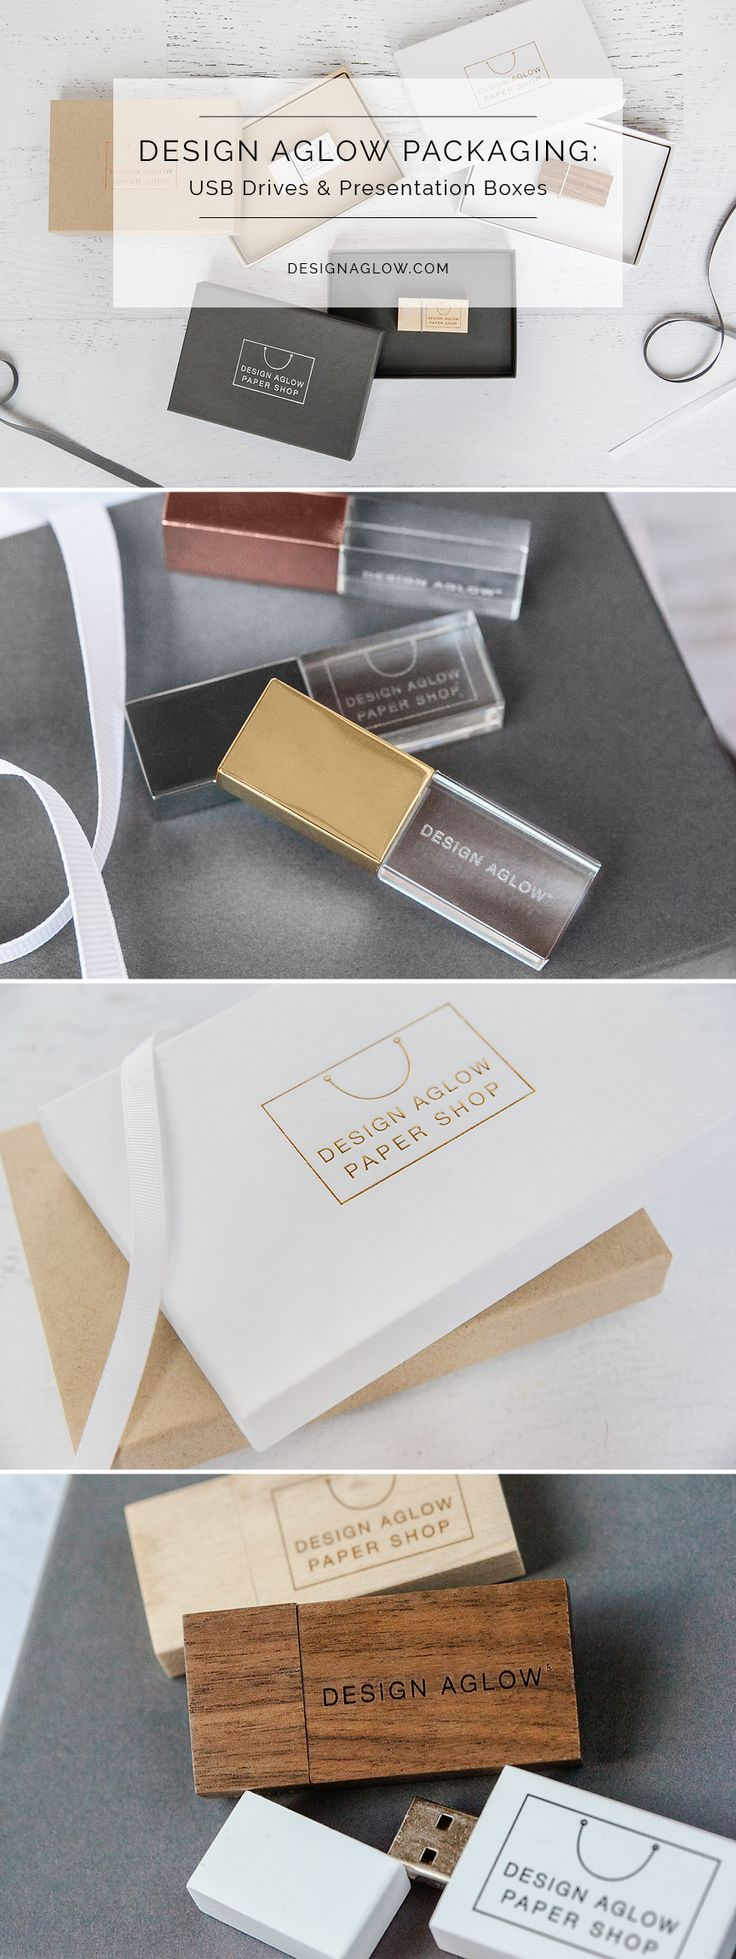 The perfect presentation for your most valuable product, these USB drives and boxes complete your brand experience with elegance and style.